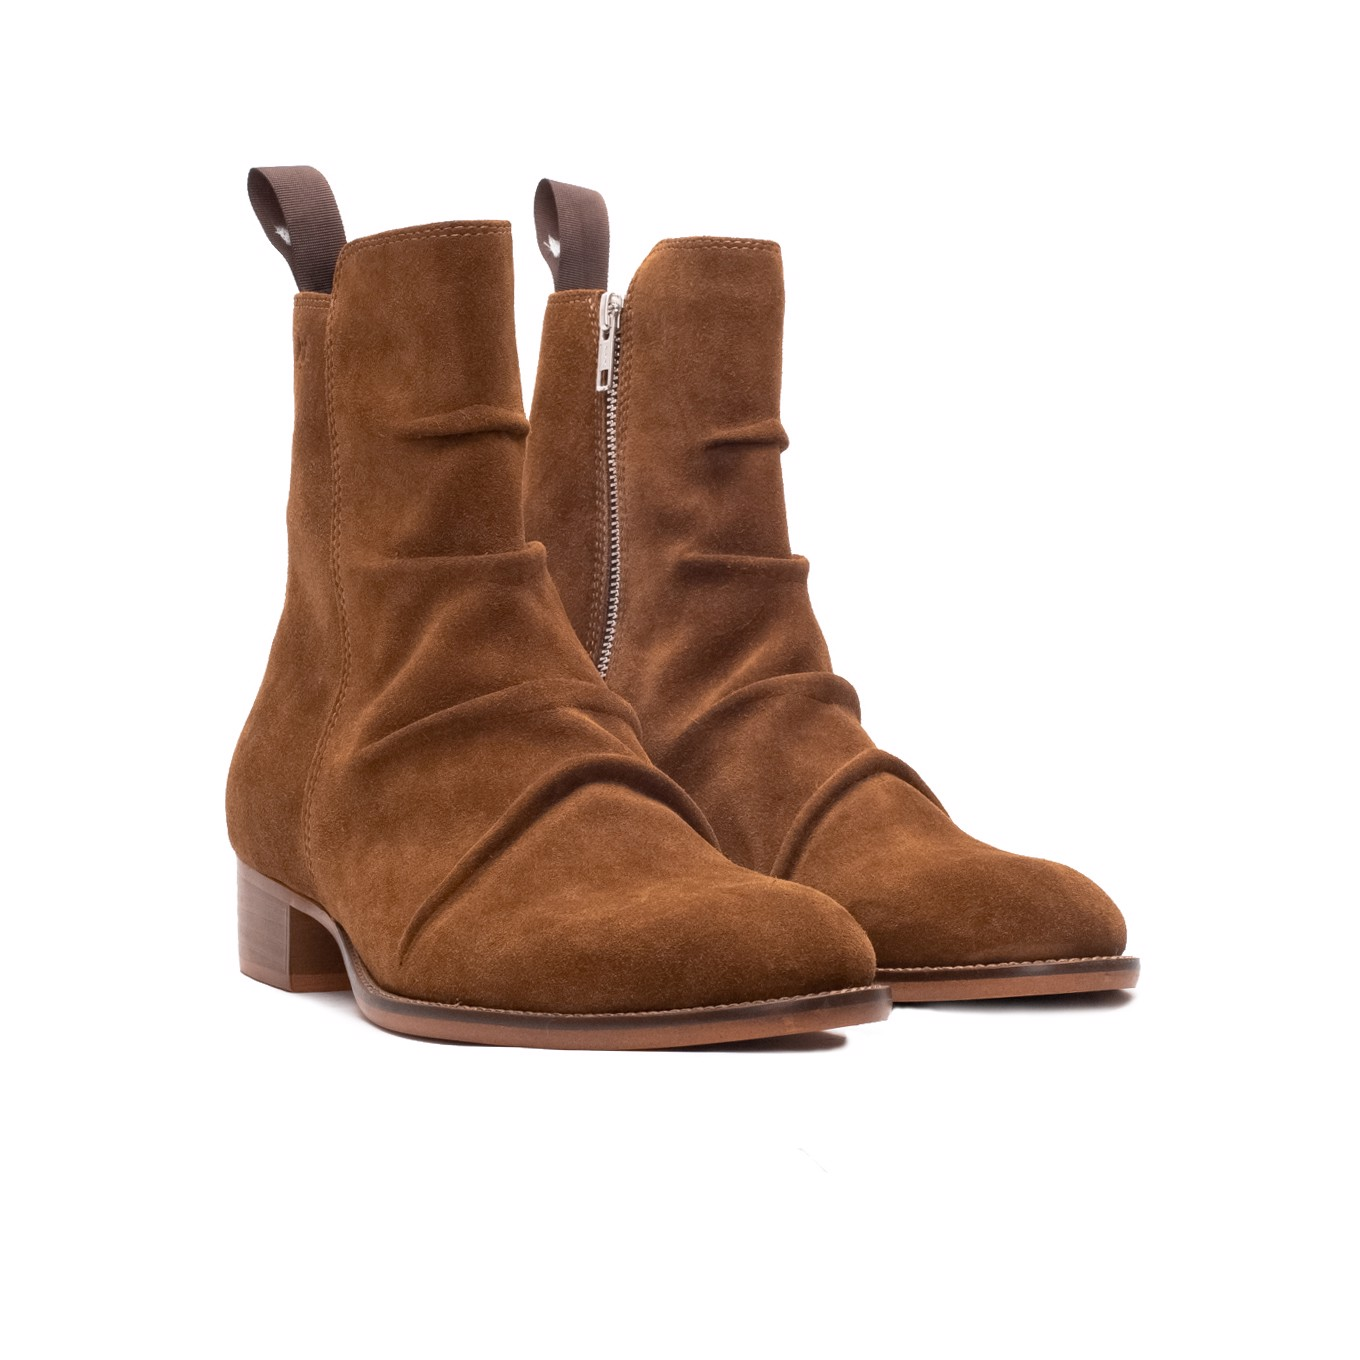 THE GHOST ZIP BOOT – TOBACCO